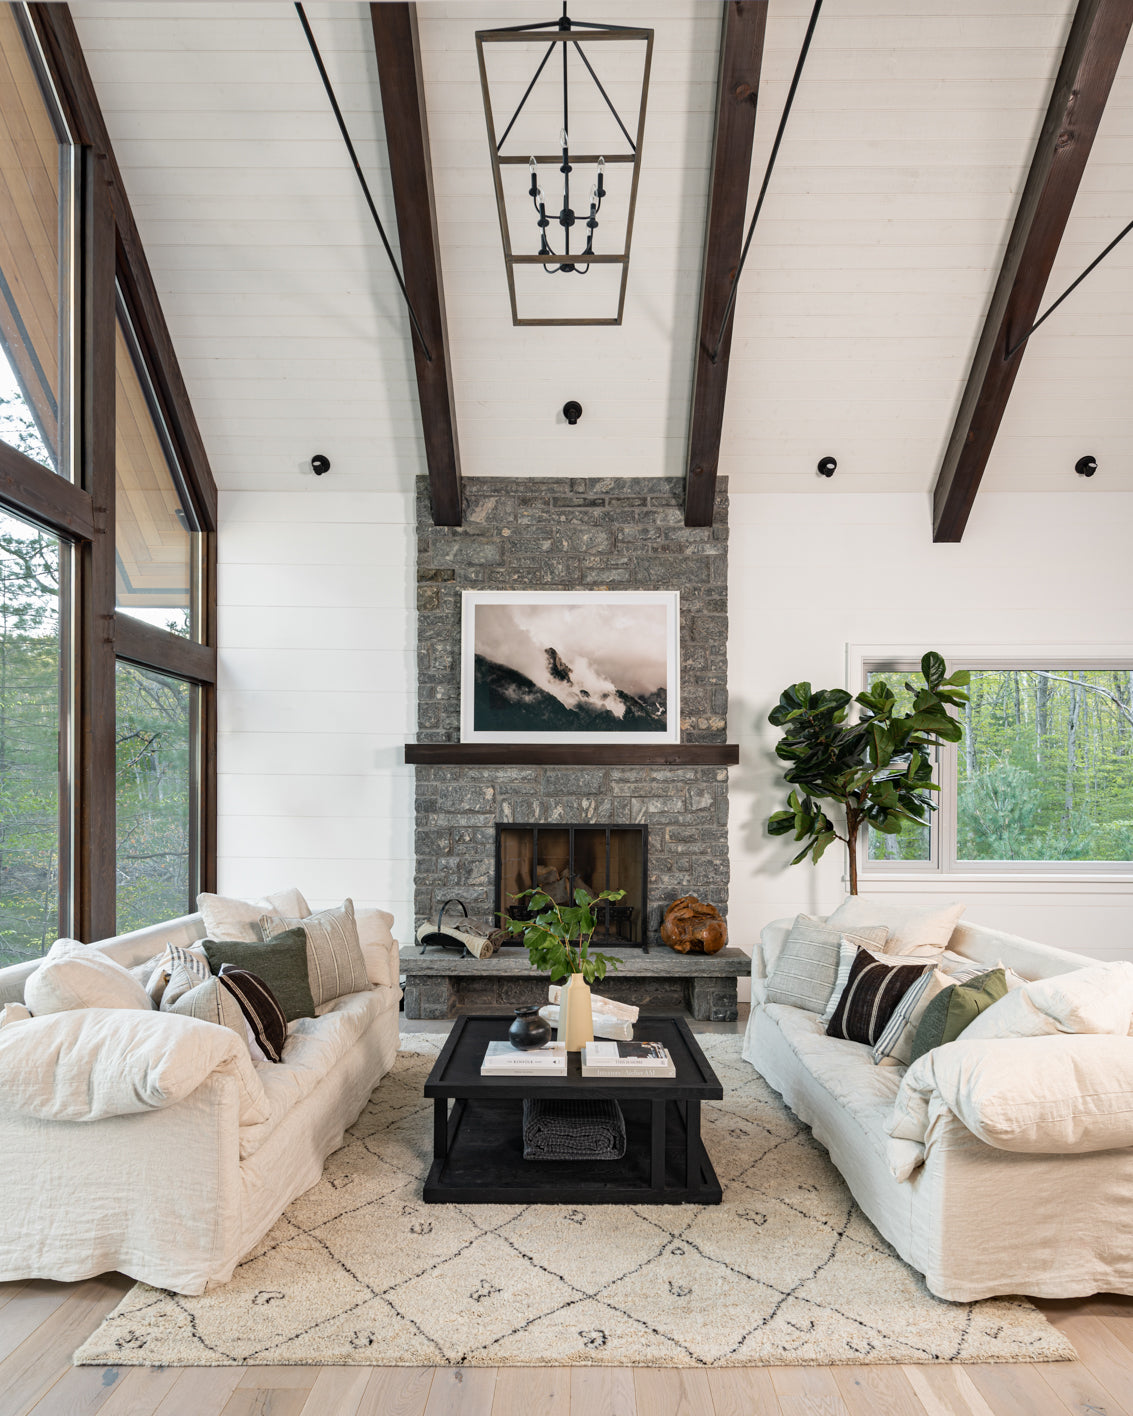 Wooden beams and stone fireplace with white furniture.